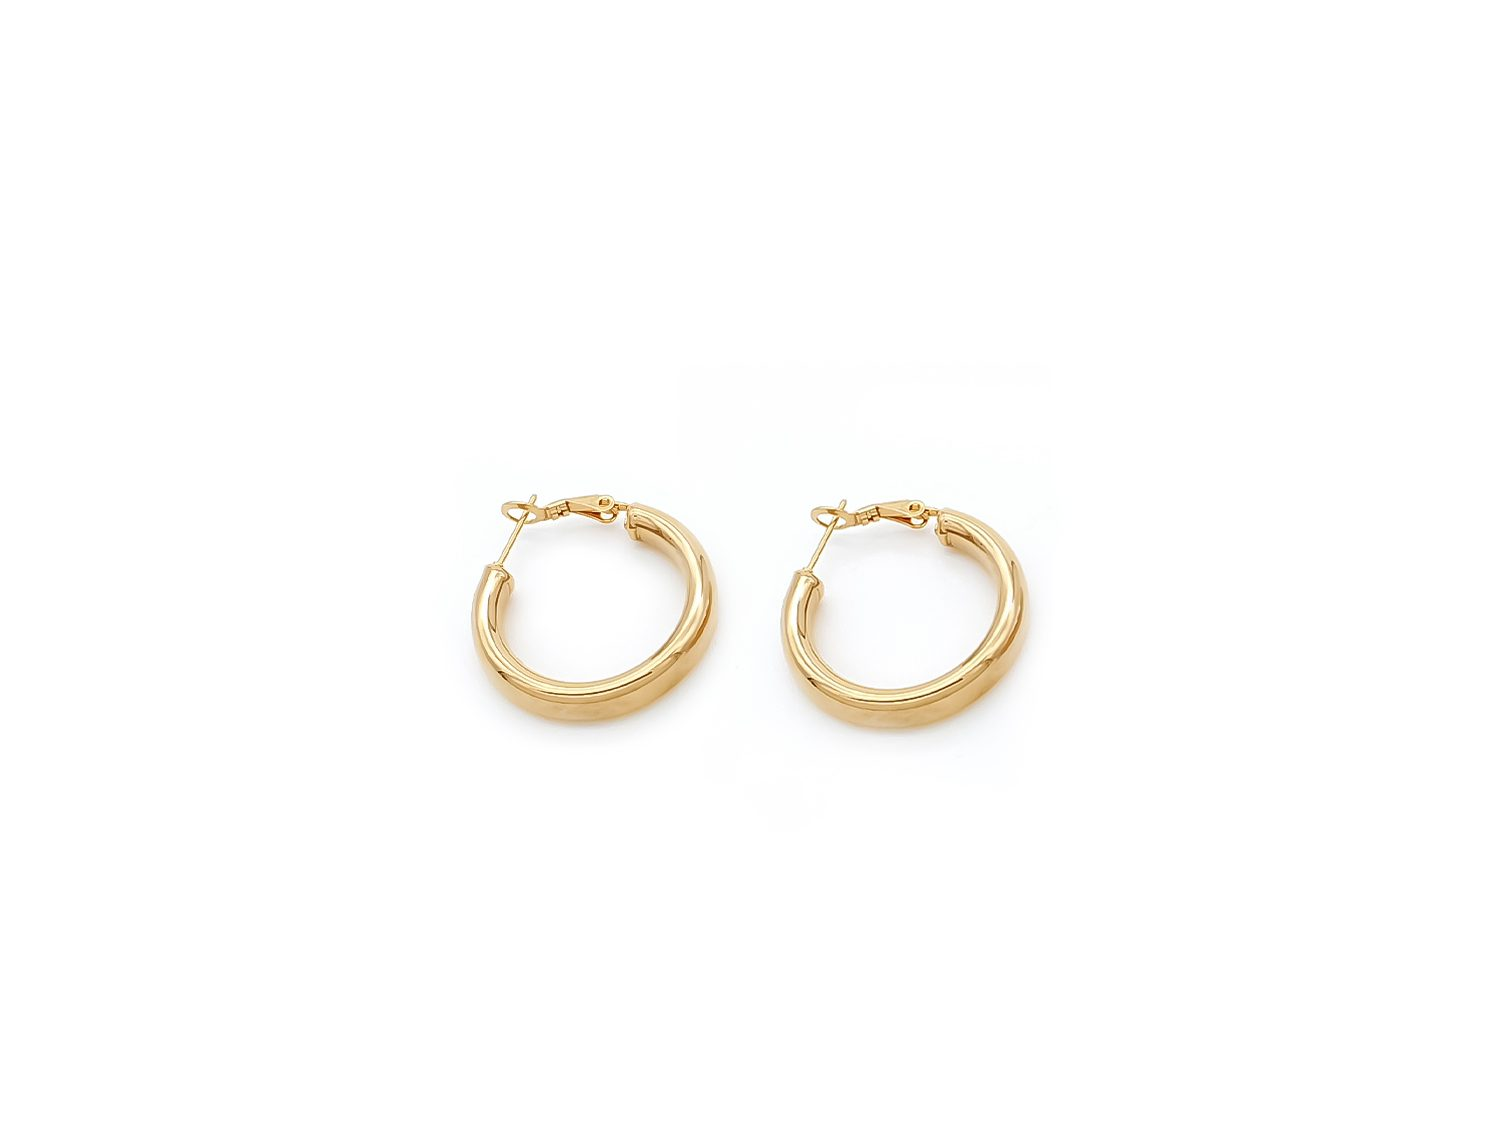 Gold Plated Thick Hoop Earrings 3cm - Adema